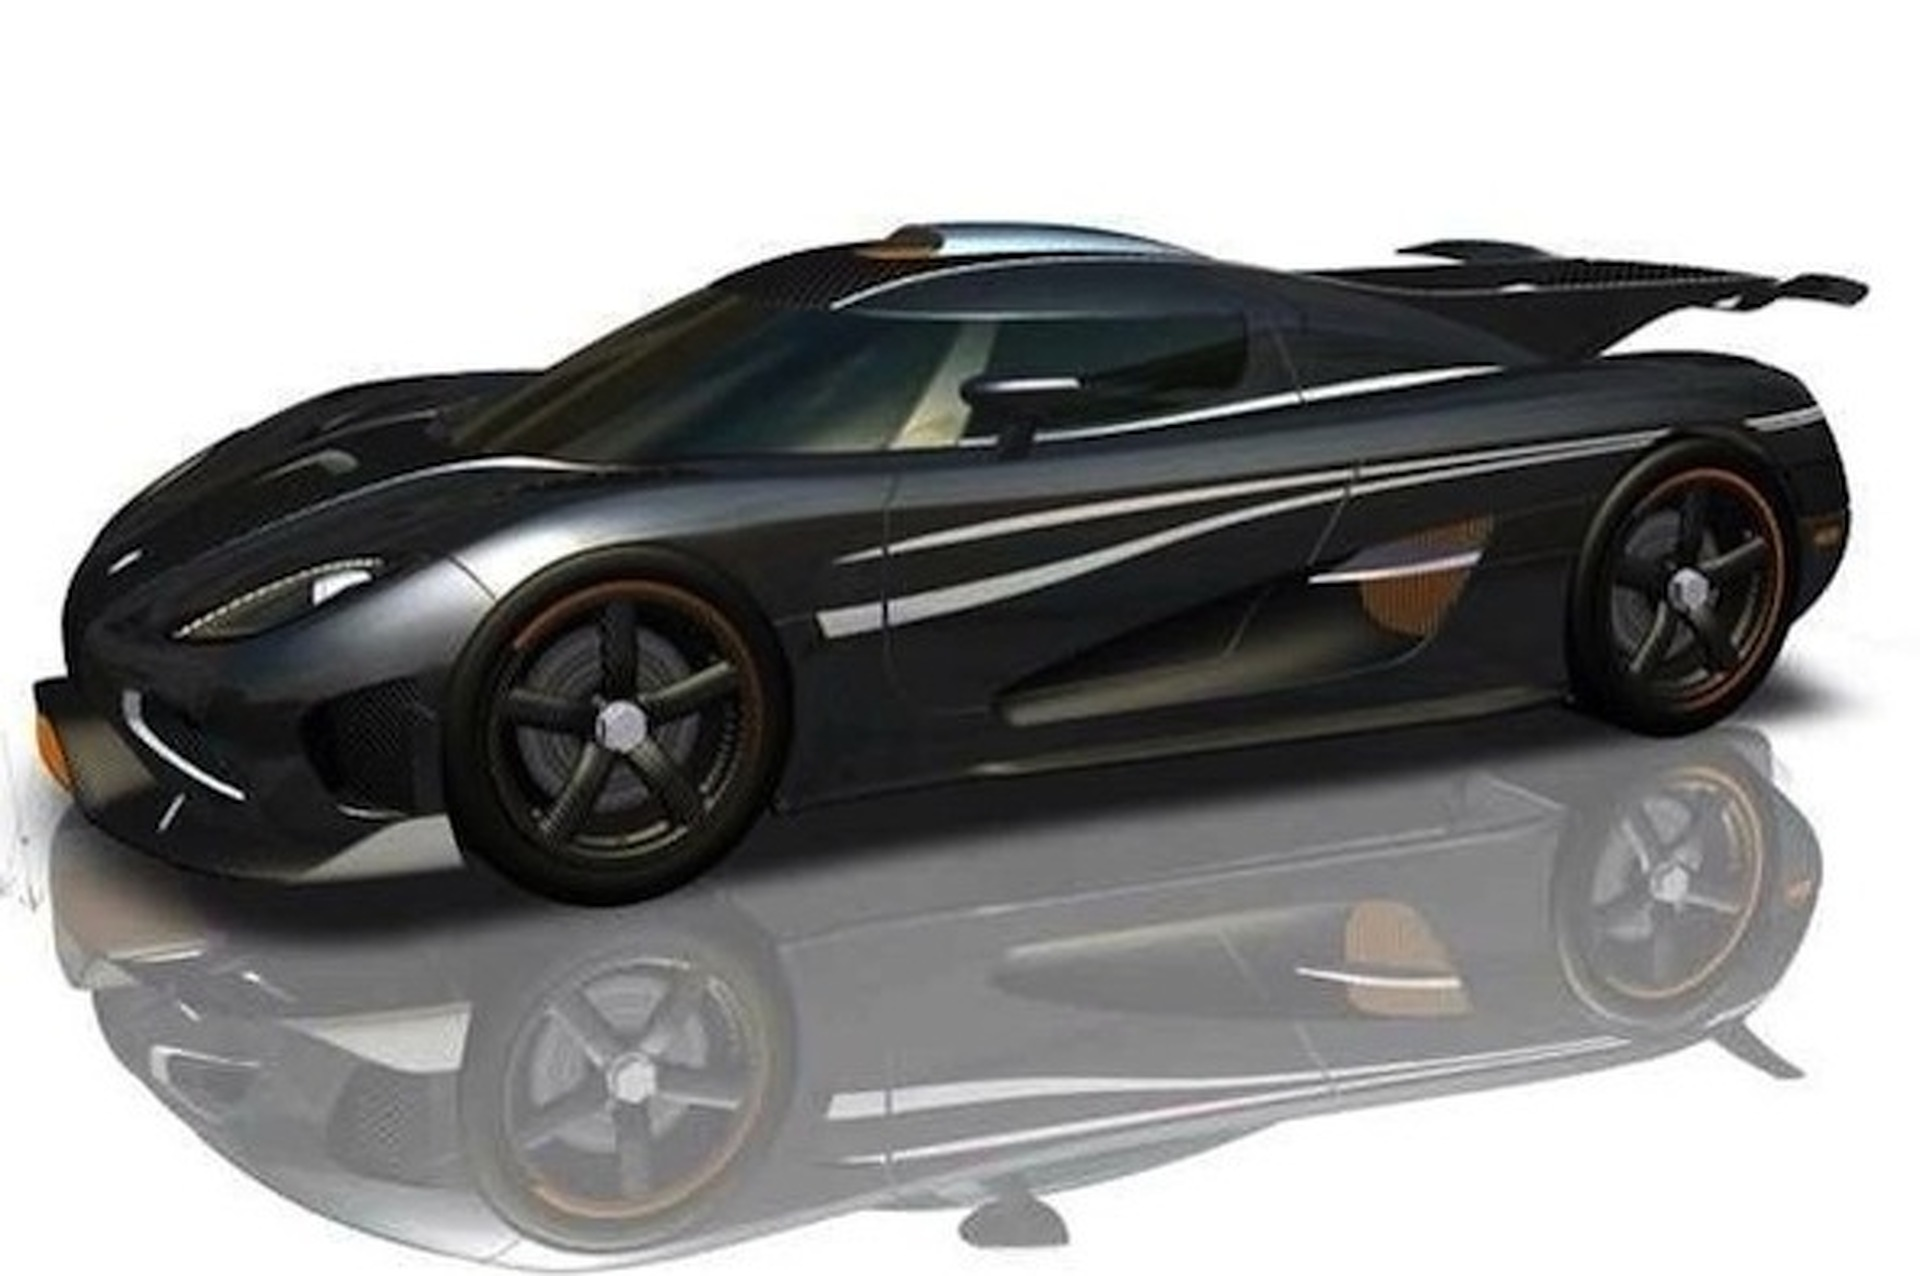 Koenigsegg's 1,400HP One:1 Supercar Will Debut in Geneva